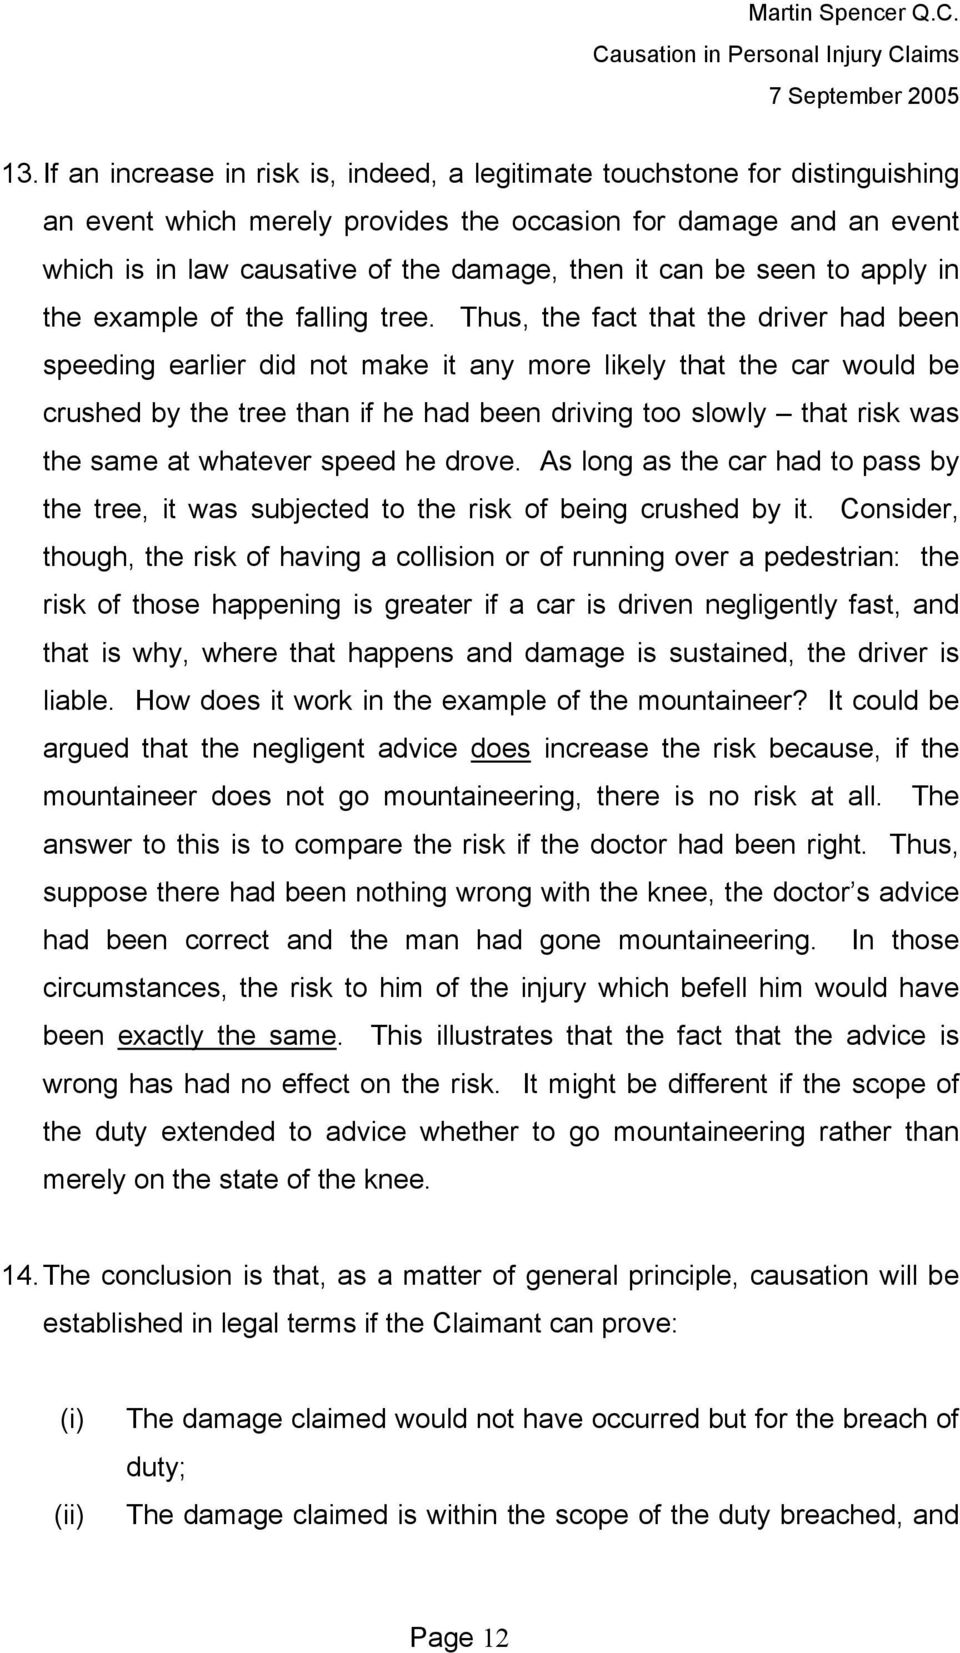 Thus, the fact that the driver had been speeding earlier did not make it any more likely that the car would be crushed by the tree than if he had been driving too slowly that risk was the same at